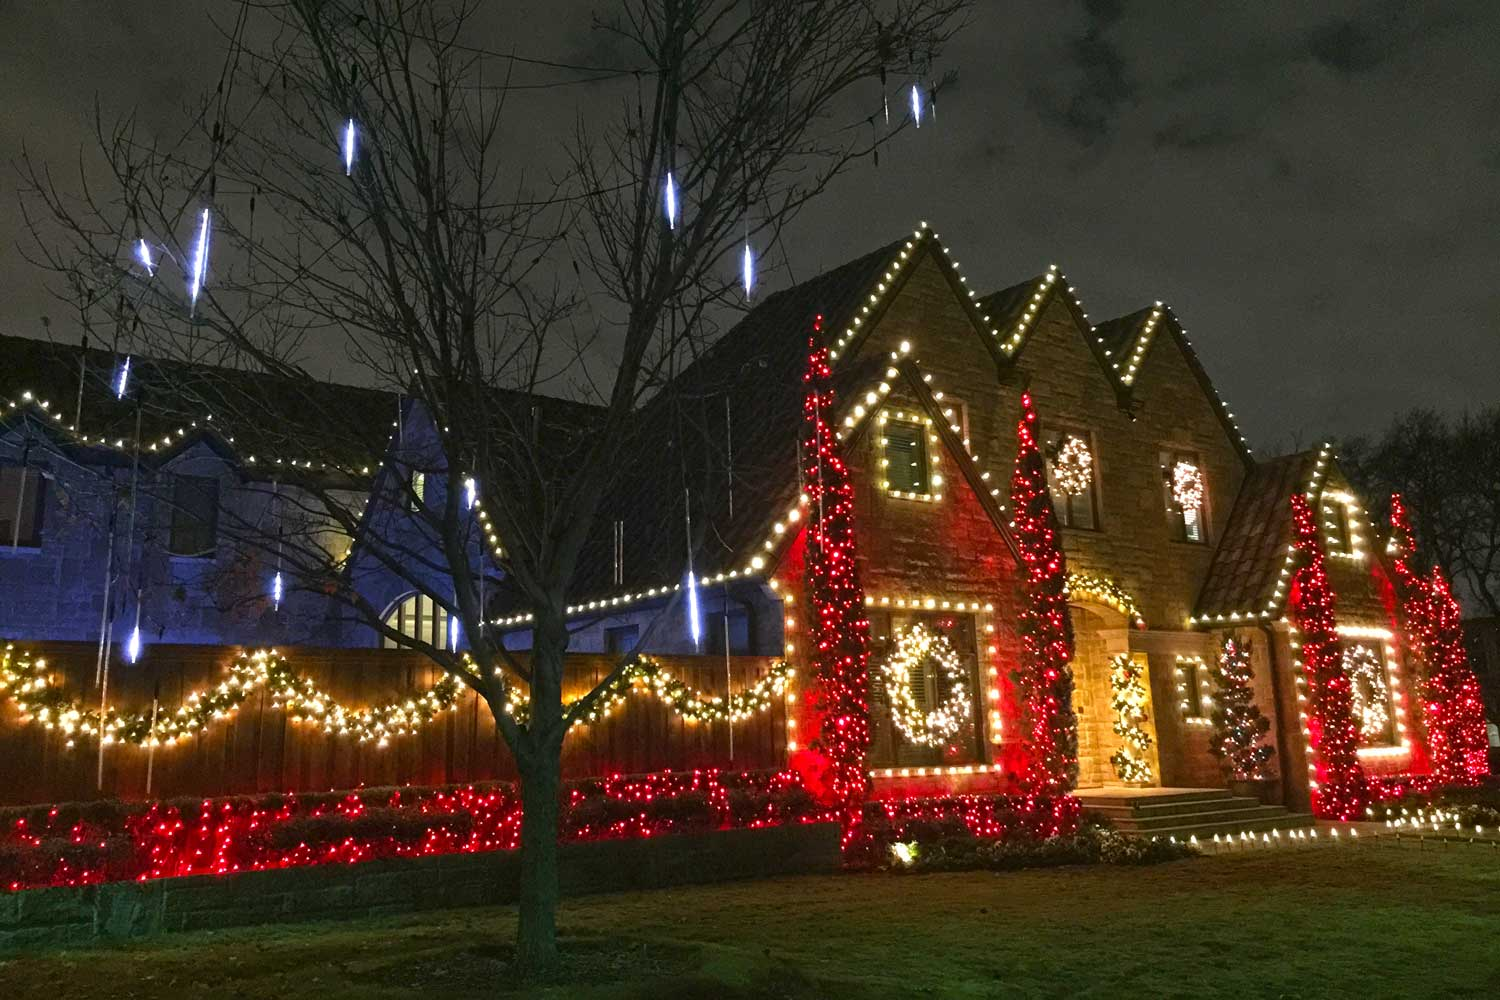 Another great looking display with fun LED motion icicle display in the trees (University Park)